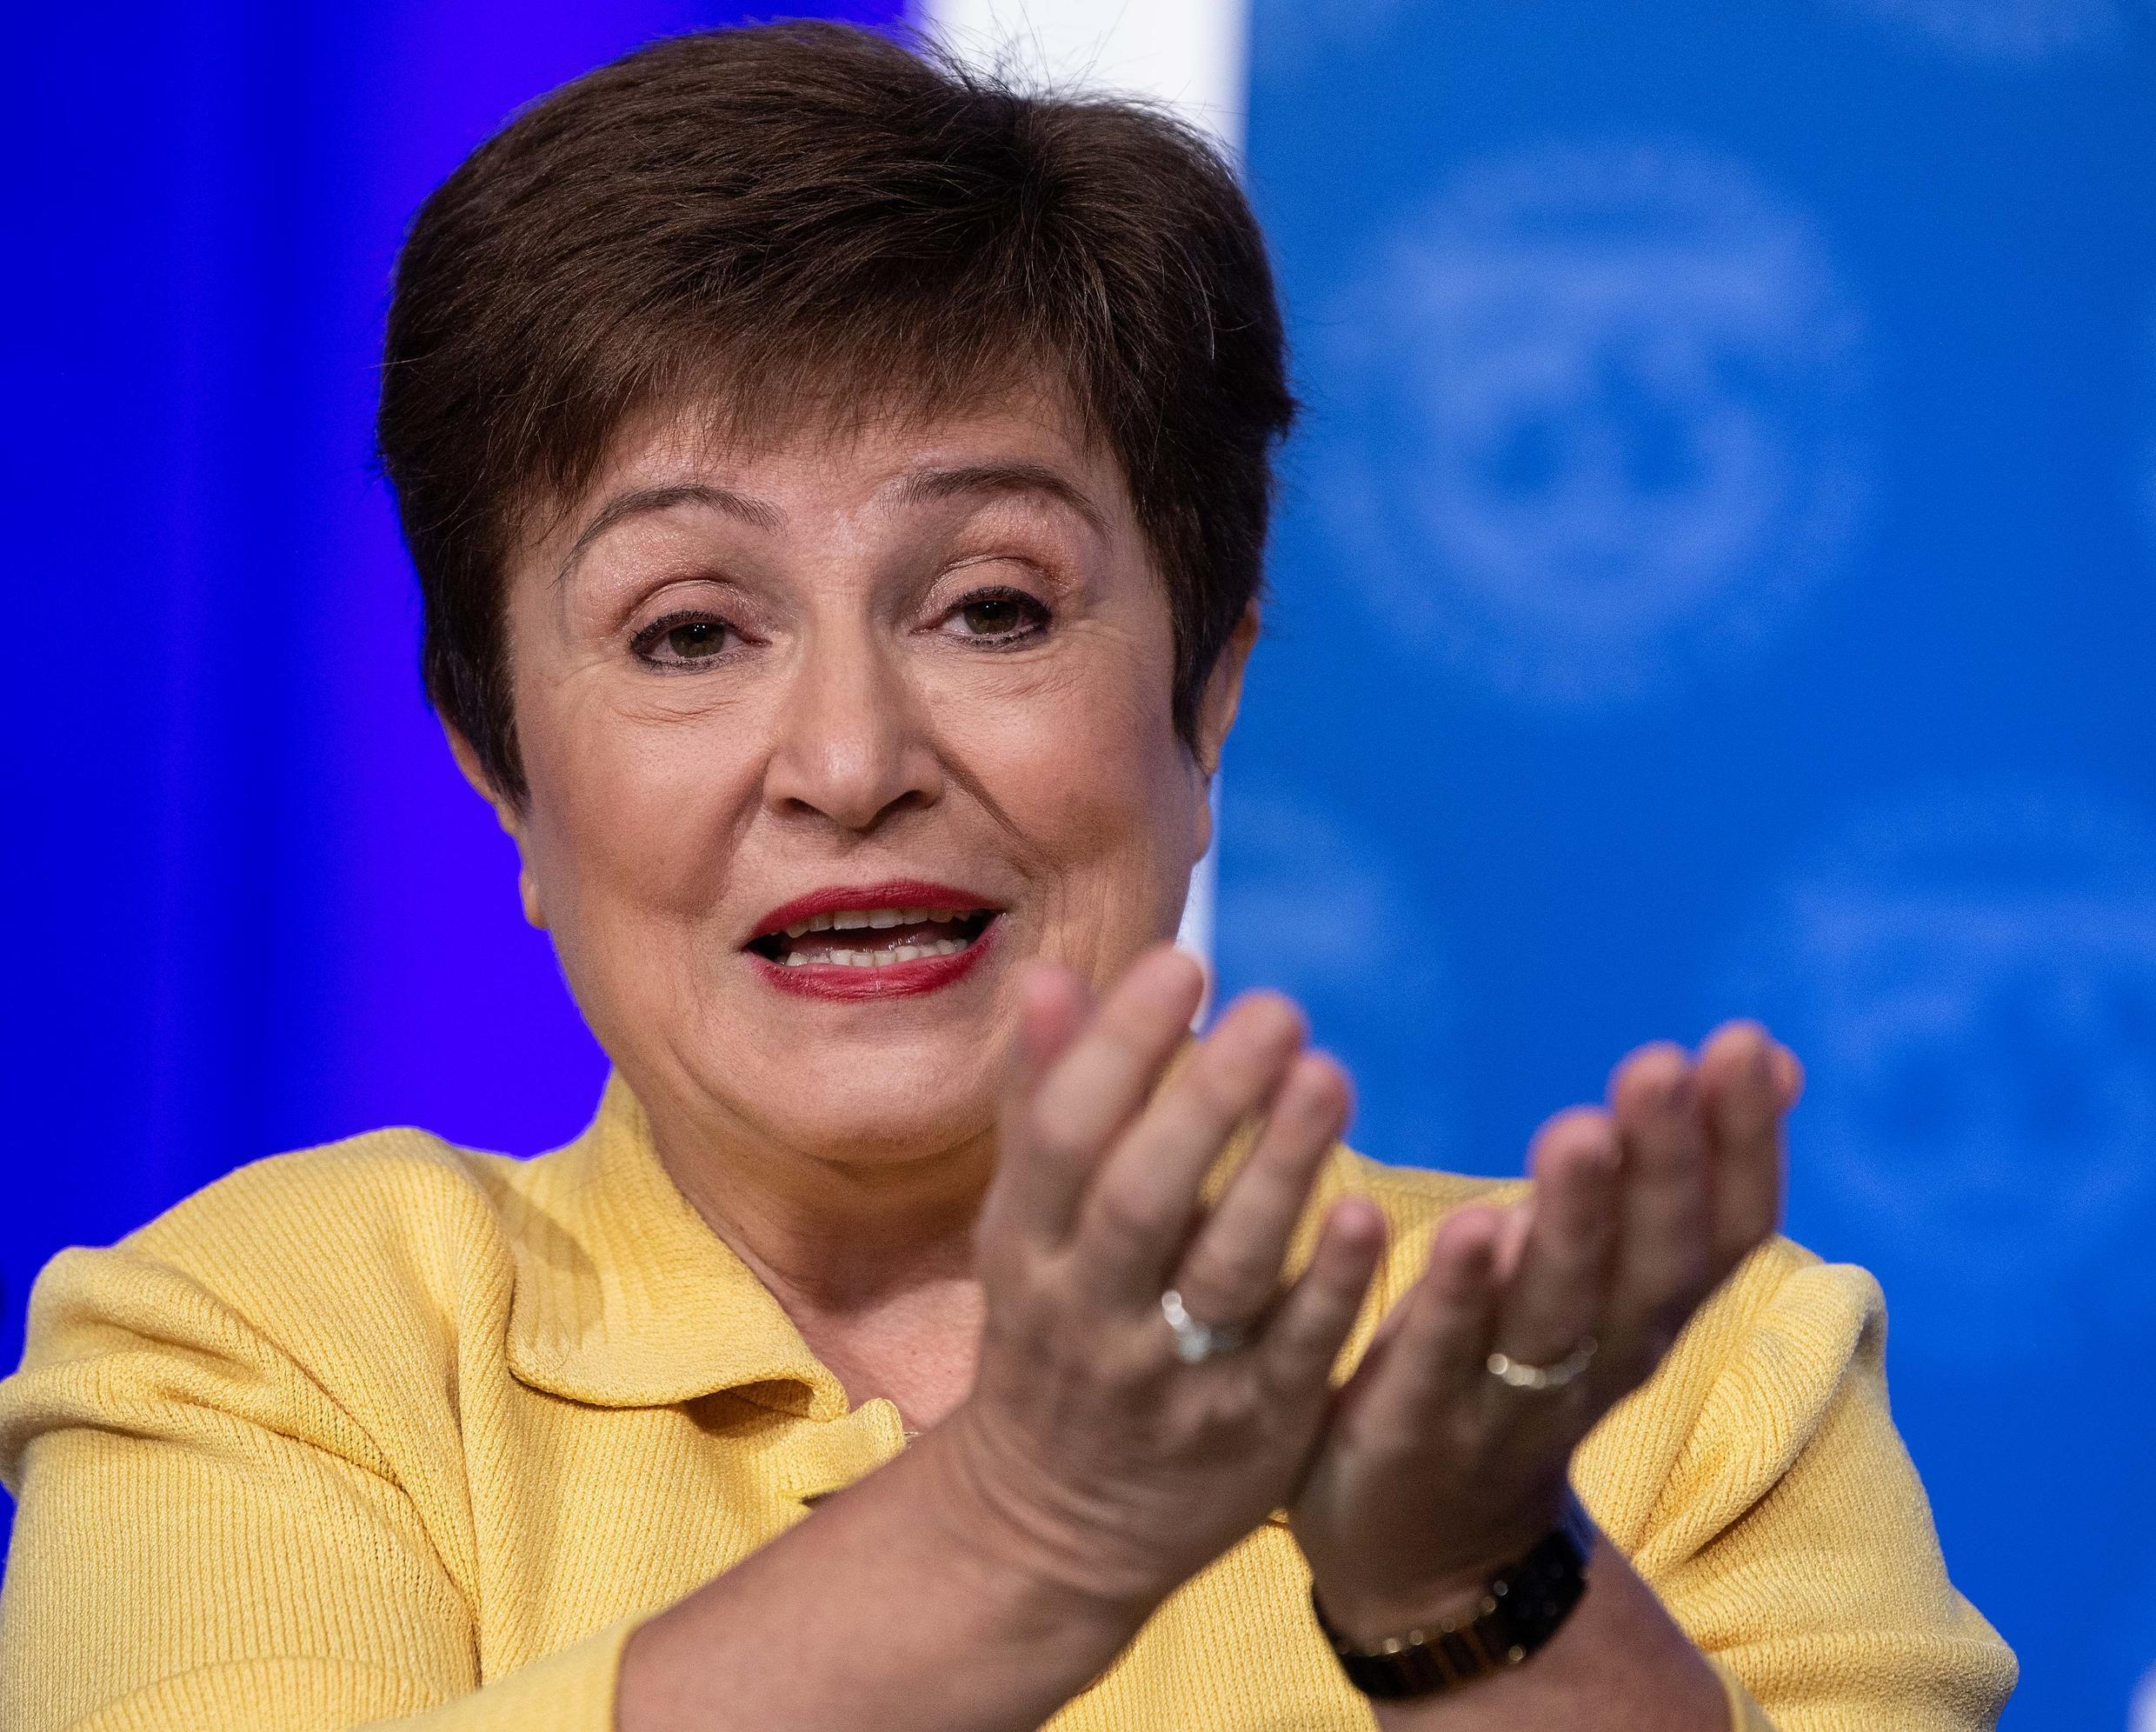 IMF Managing Director Kristalina Georgieva is hammering home the message that governments must help the poorest countries out of the Covid-19 crisis